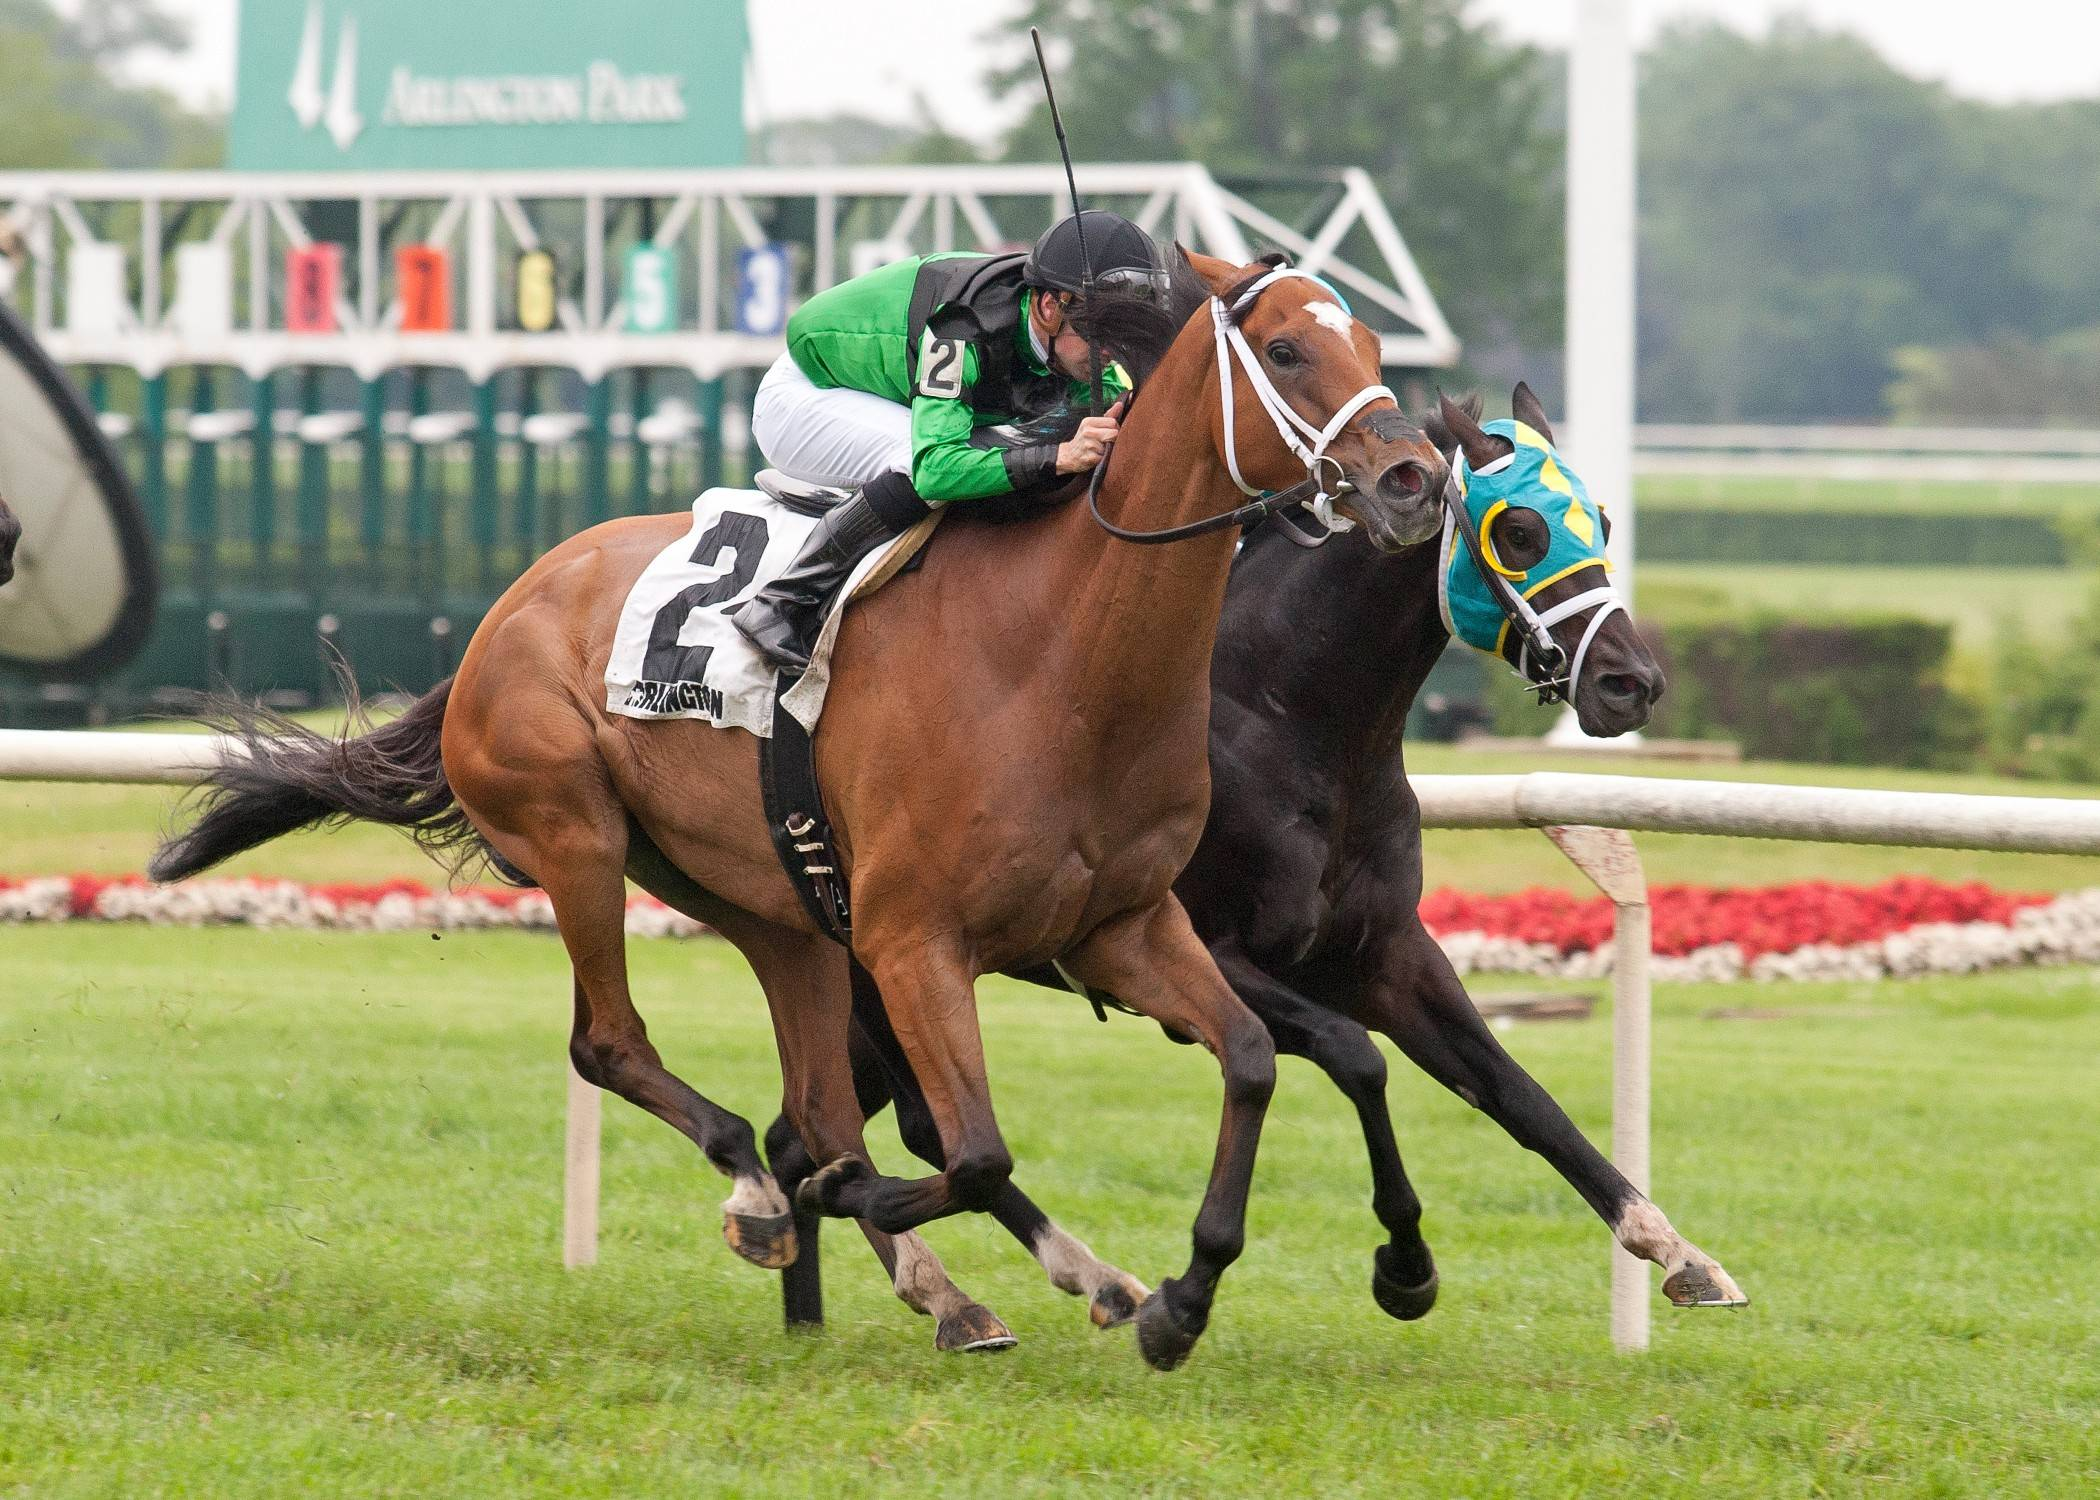 The Pizza Man won The Grade III Stars and Stripes on July 11 at Arlington as the 4-5 favorite under Florent Geroux.